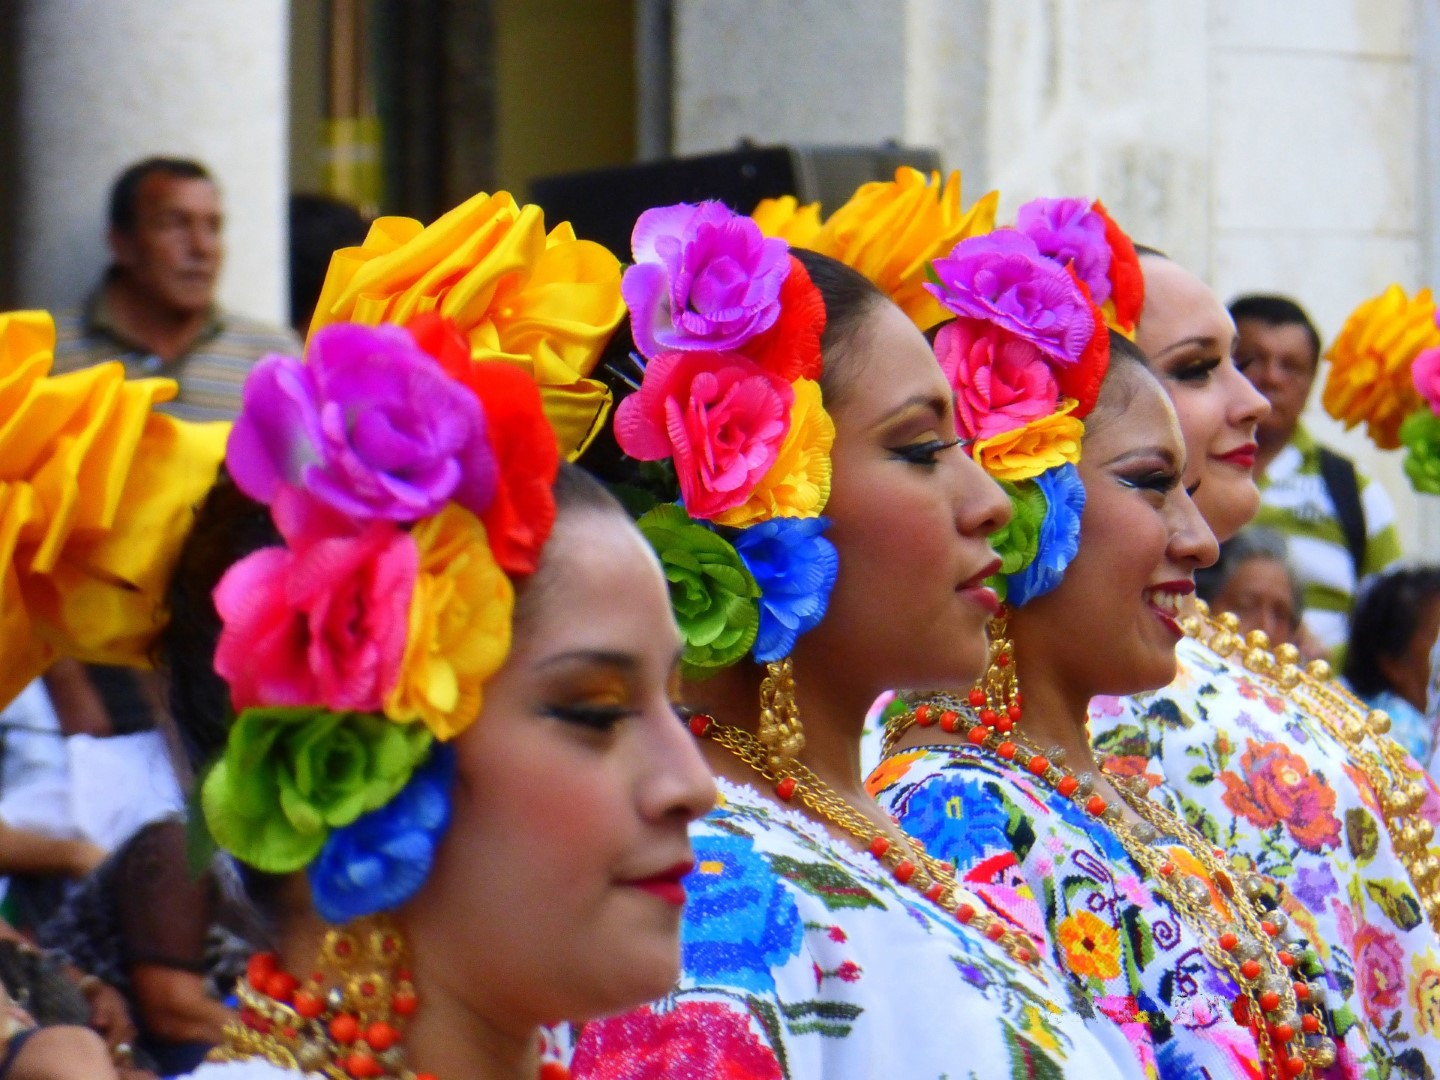 A holiday festival in the Yucatan Peninsula